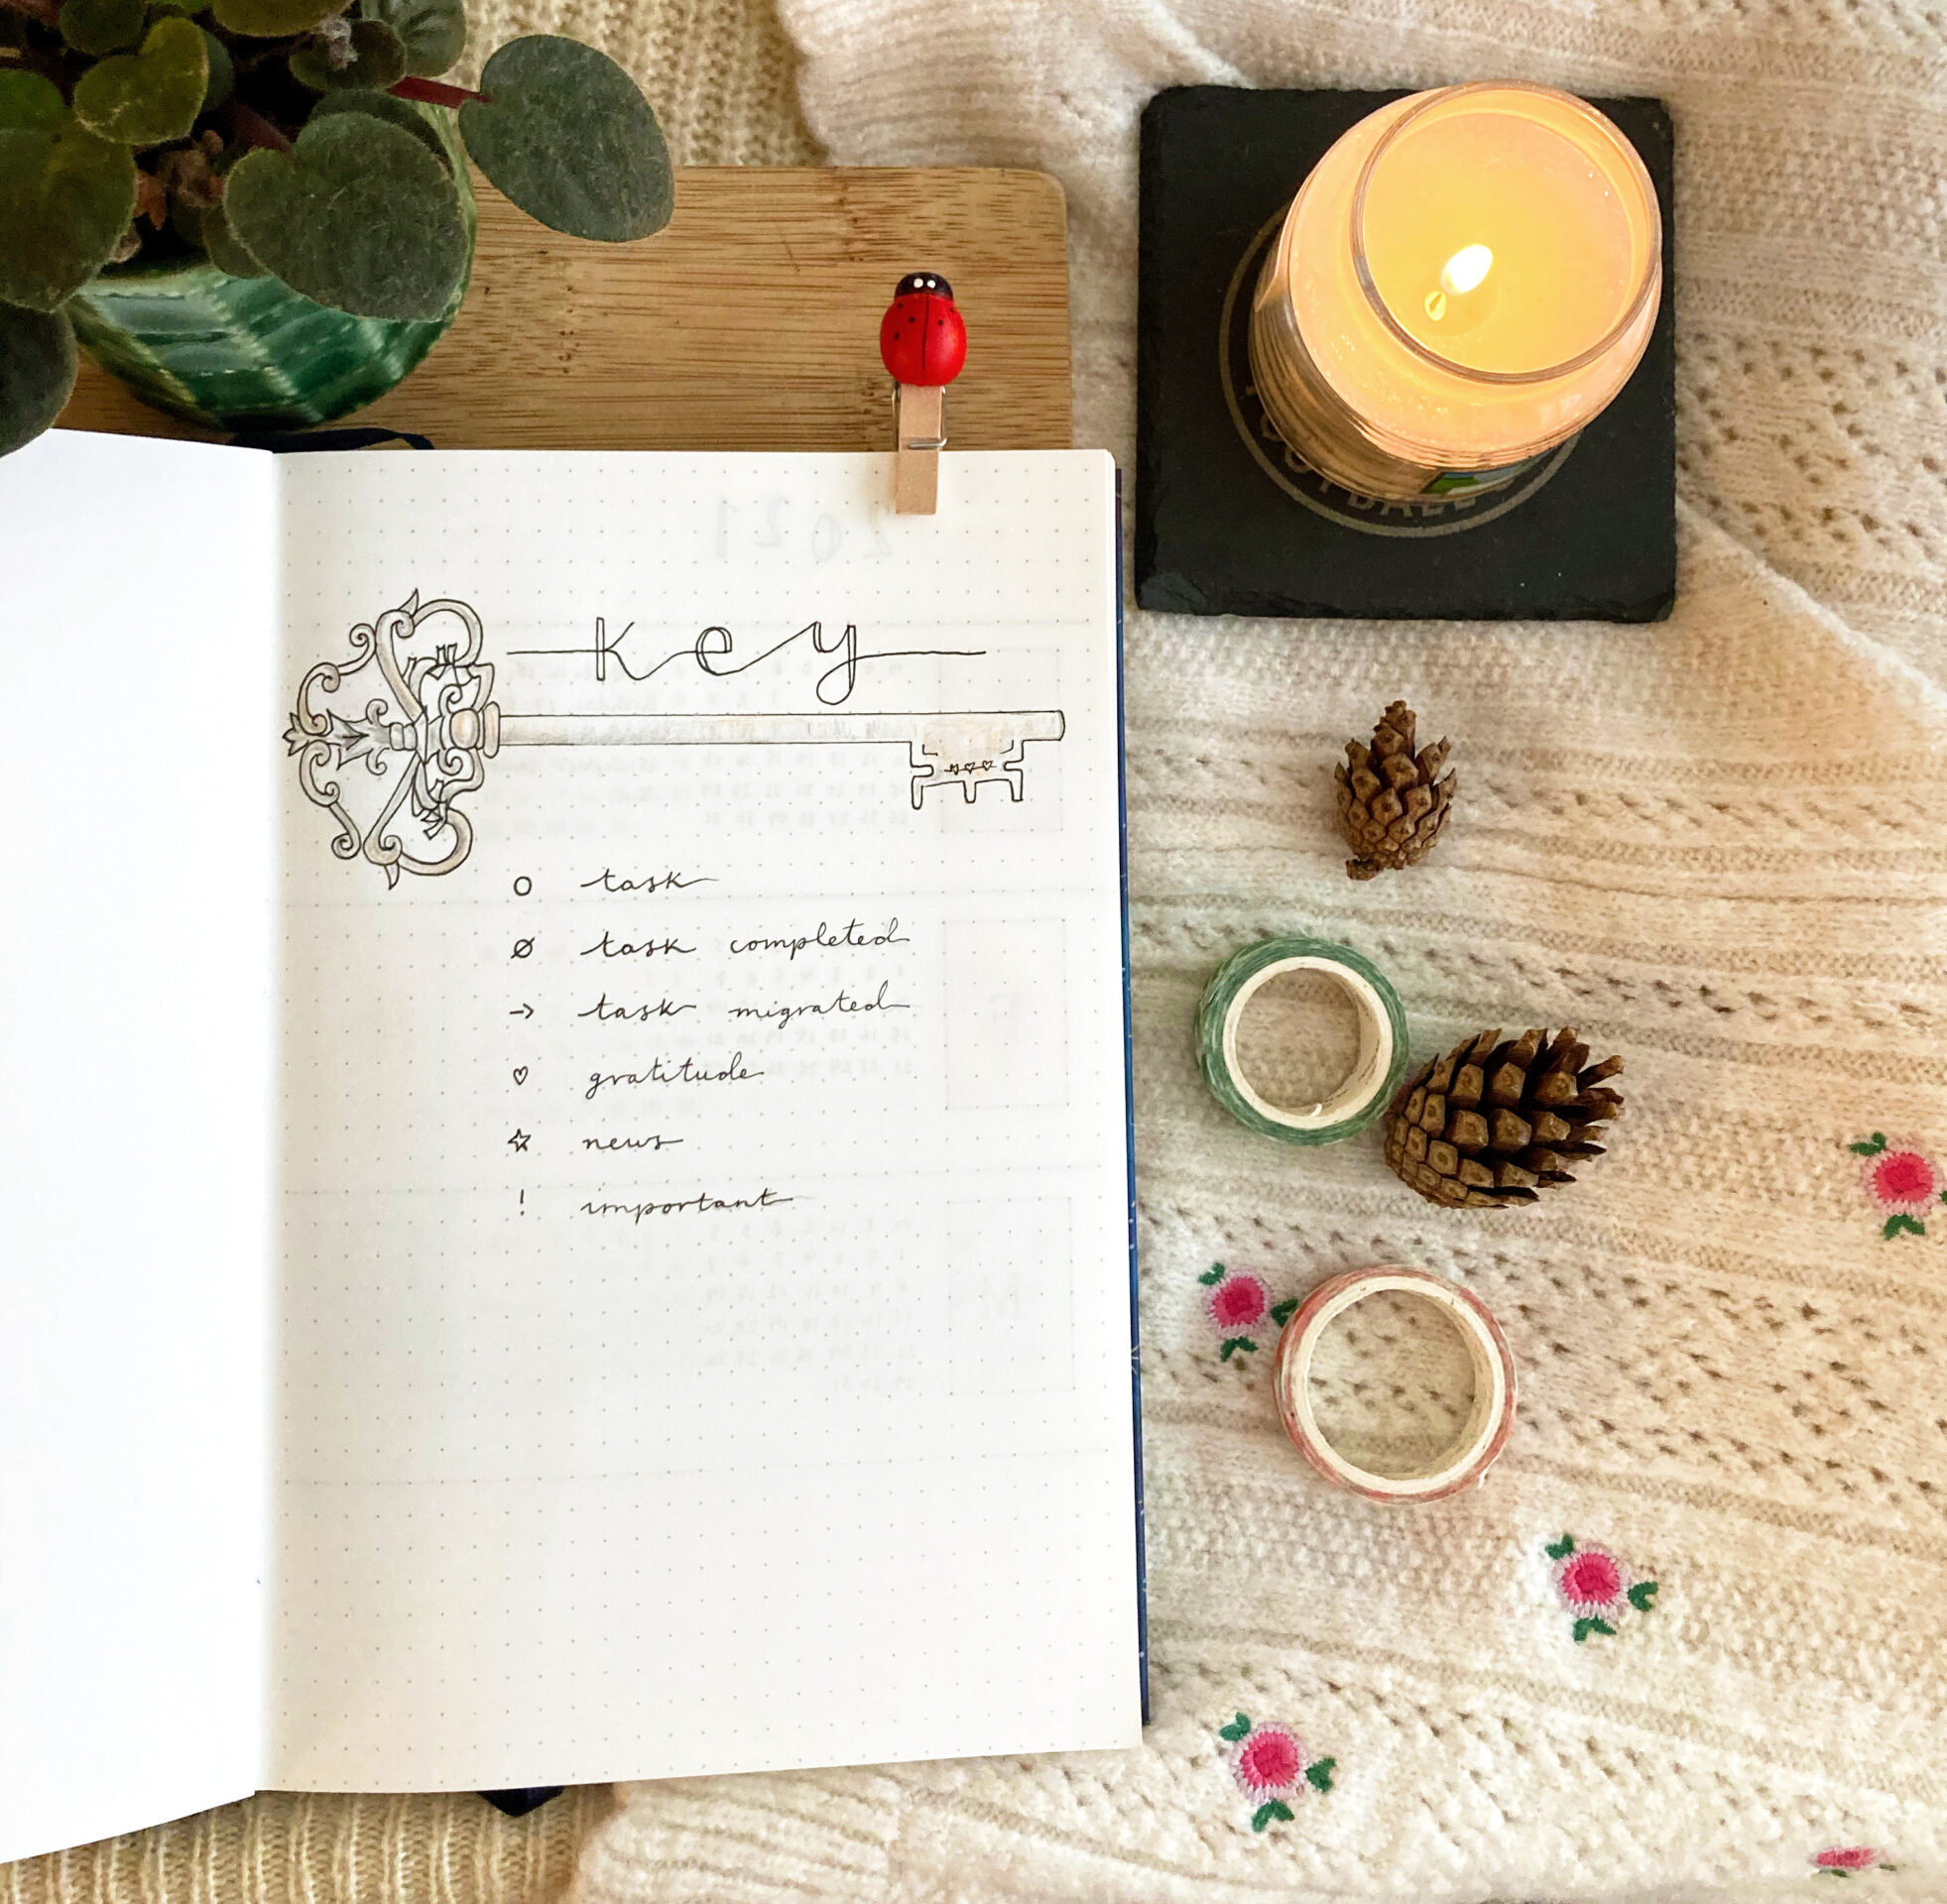 In Megan's image, there is a lit candle, two rolls of washi tape and two pine cones. There is also a square-lined notebook open. On that page is the word 'Key' and a hand drawn key underneath. Under the drawing, there is a key.